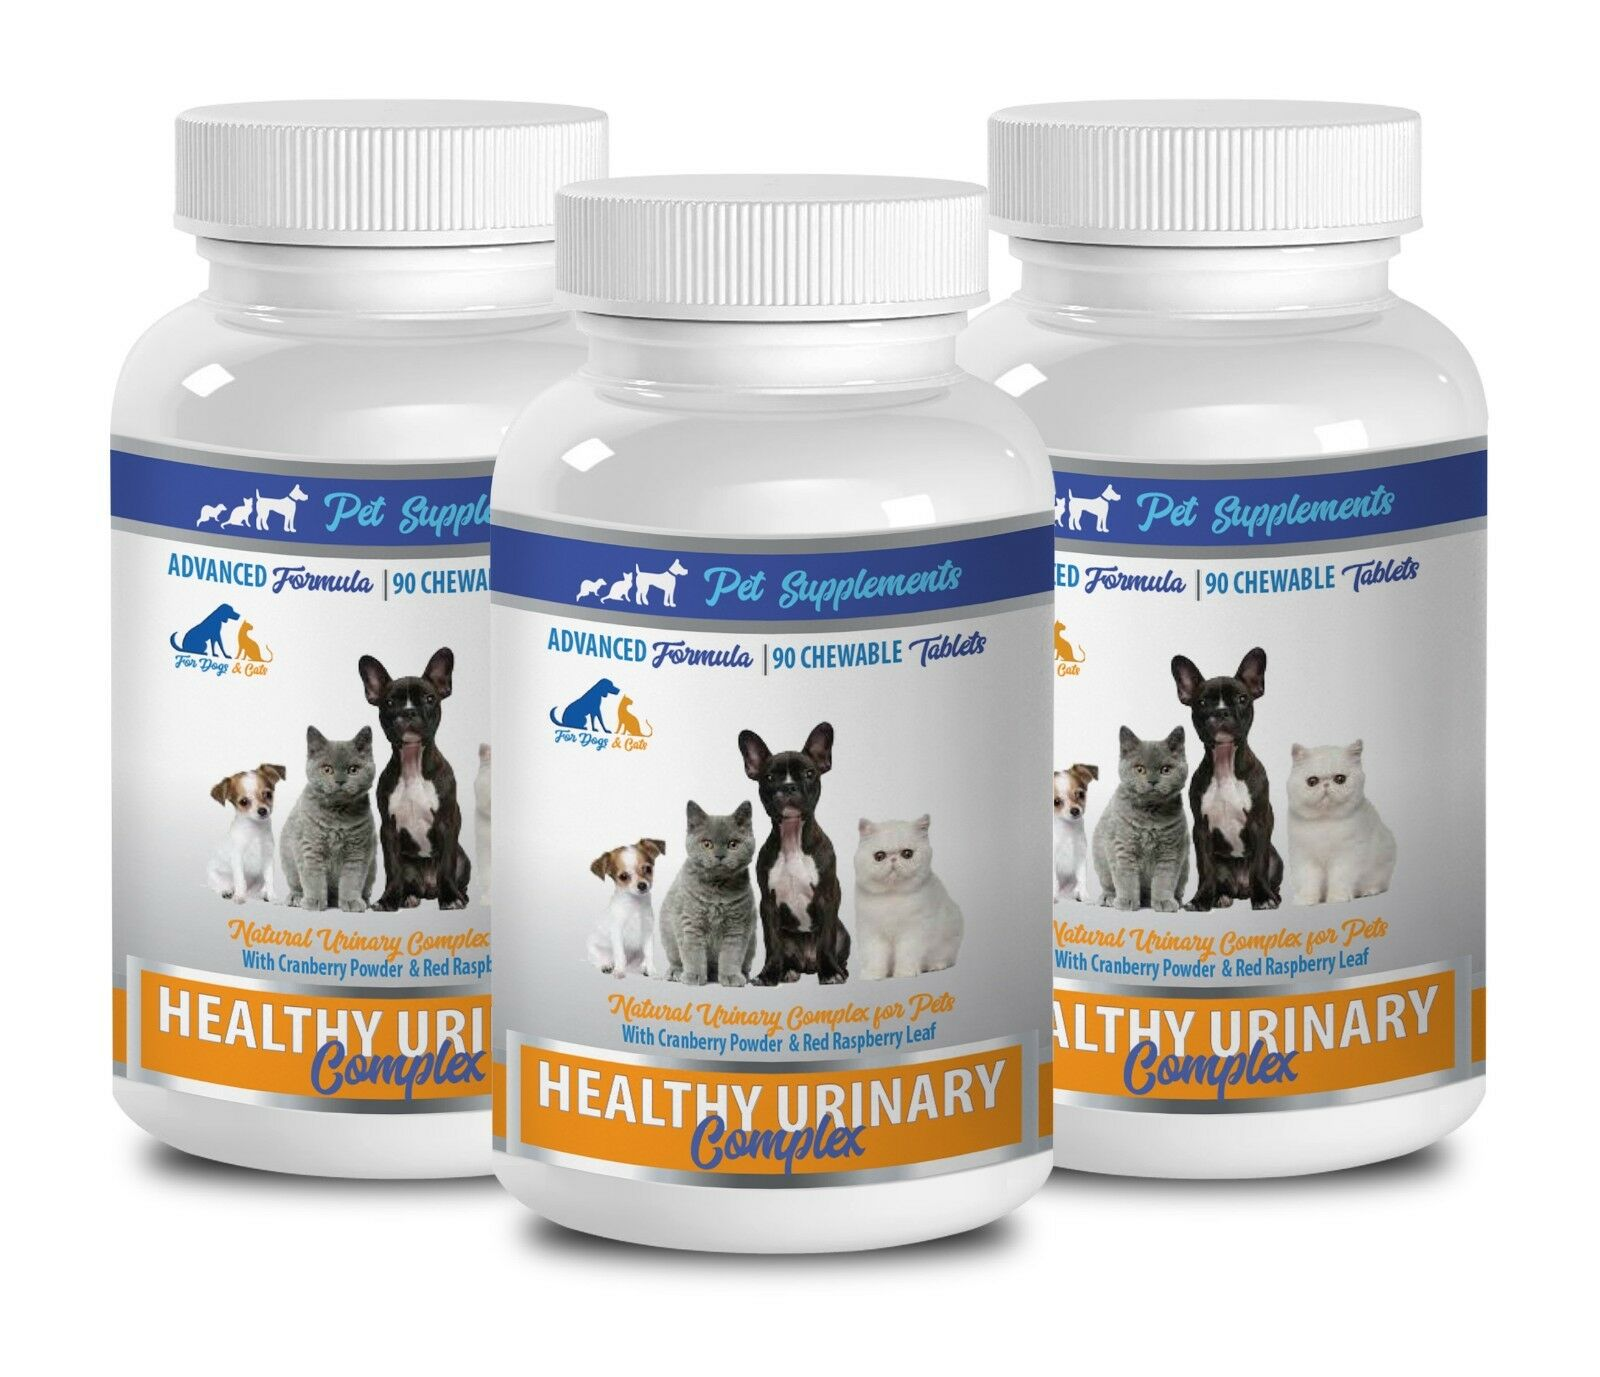 Urinary tract support small dog - URINARY TRACT SUPPORT FOR PETS 3B- corn silk